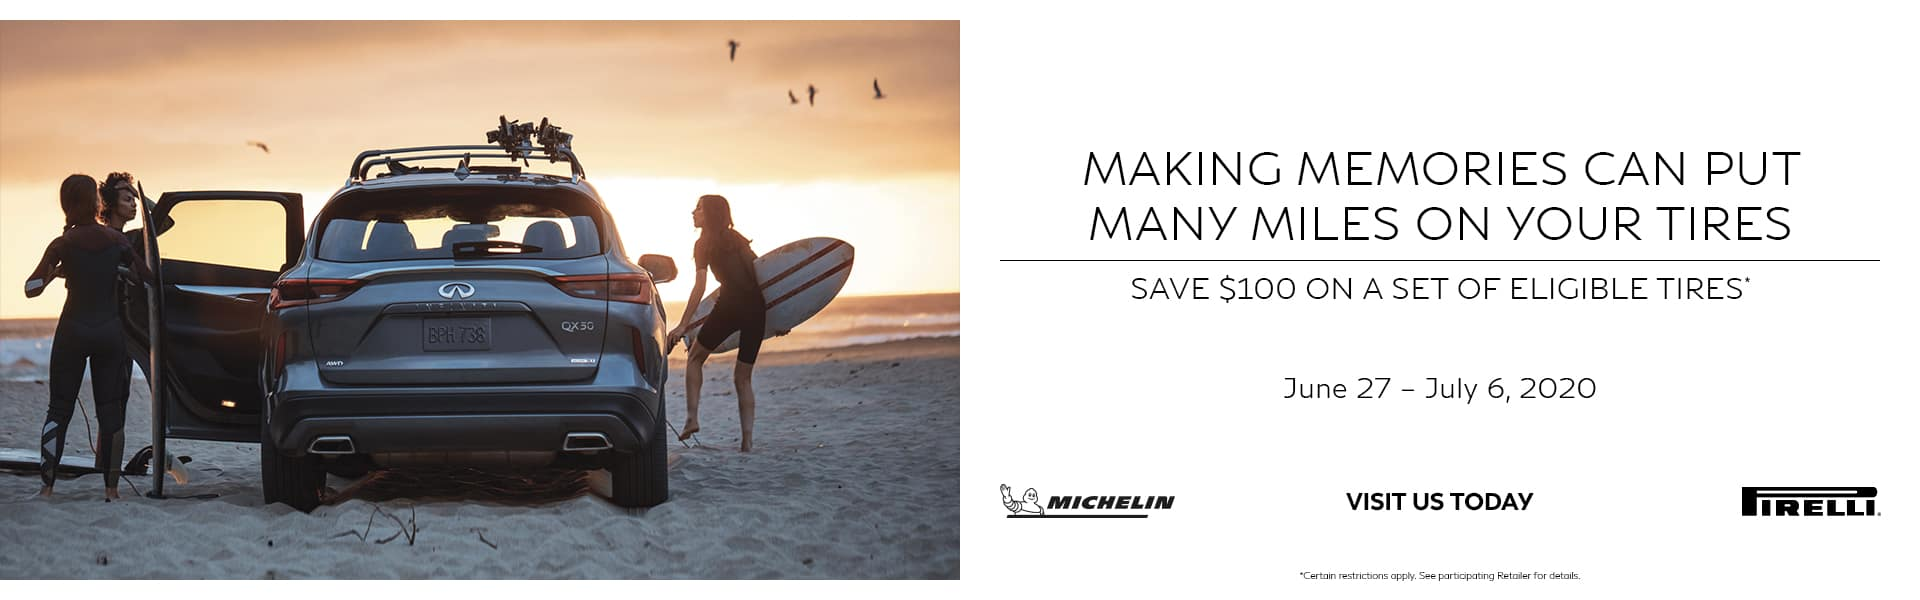 Making memories can put many miles on your tires. Save $100 on a set of eligible tires. Offer ends 7/6/2020. See service team for details.